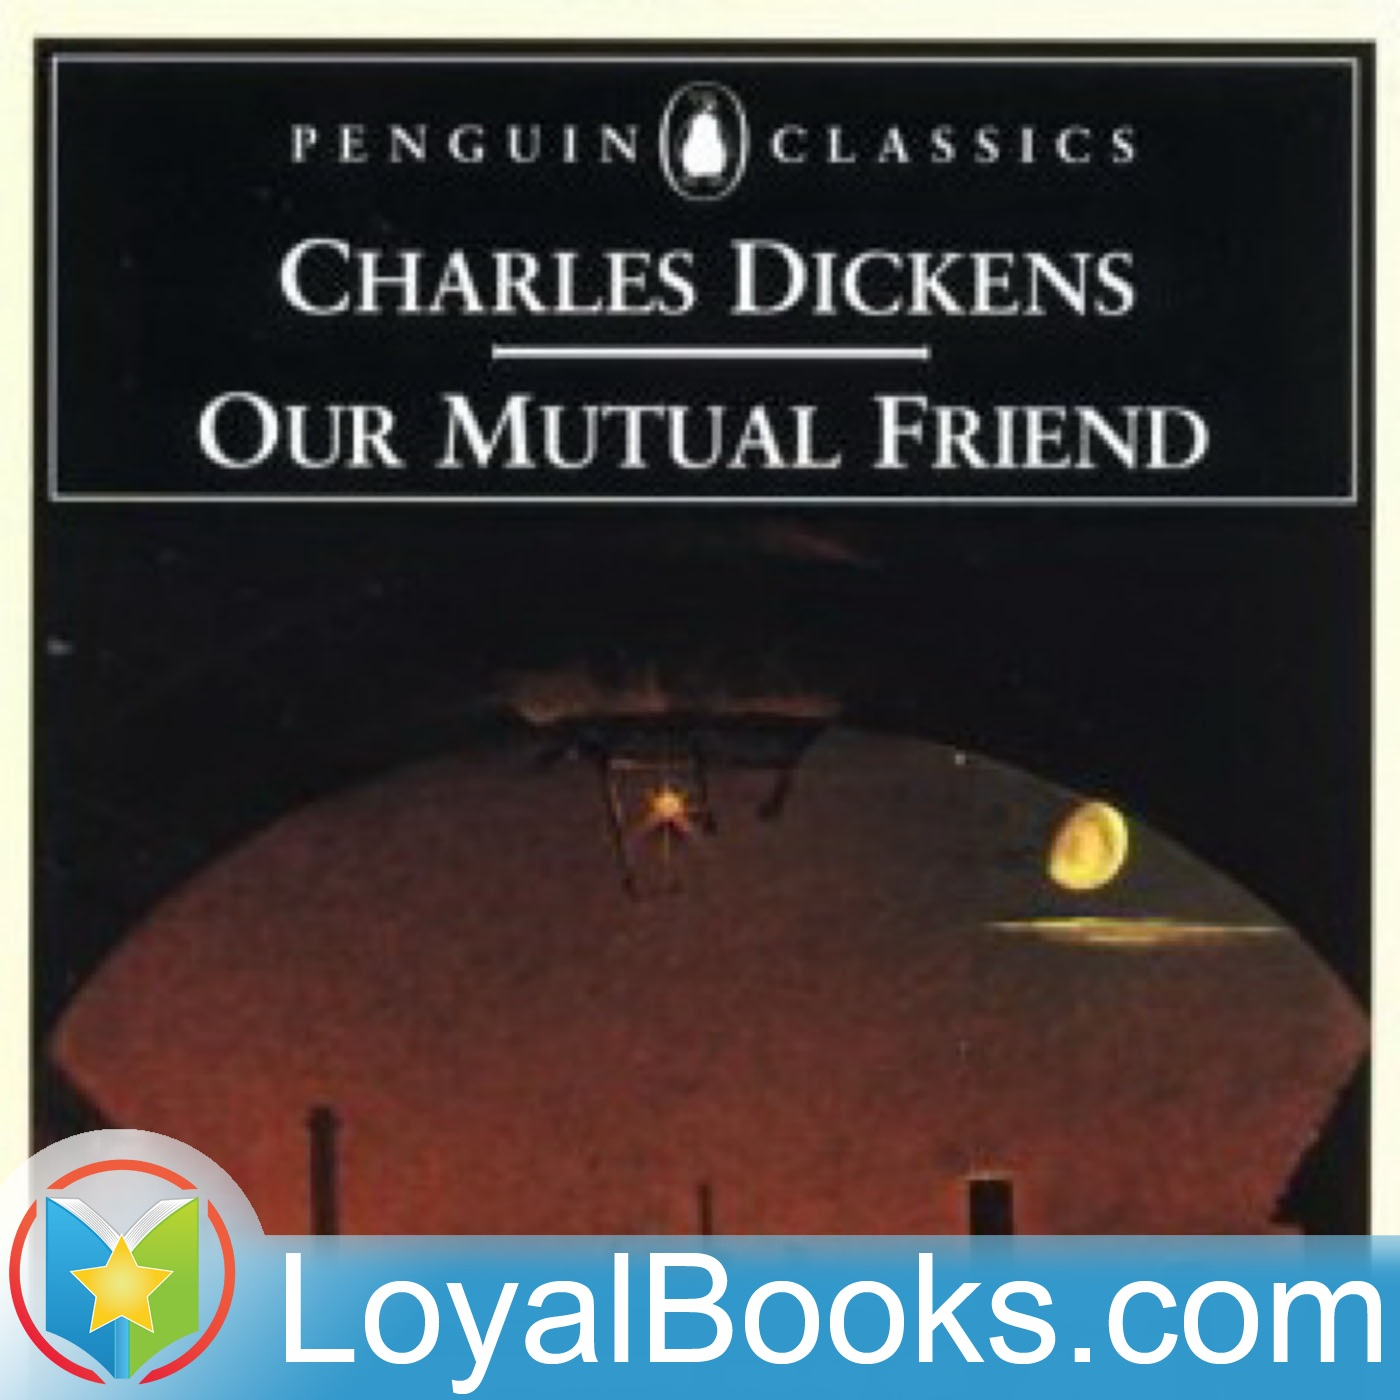 <![CDATA[Our Mutual Friend by Charles Dickens]]>